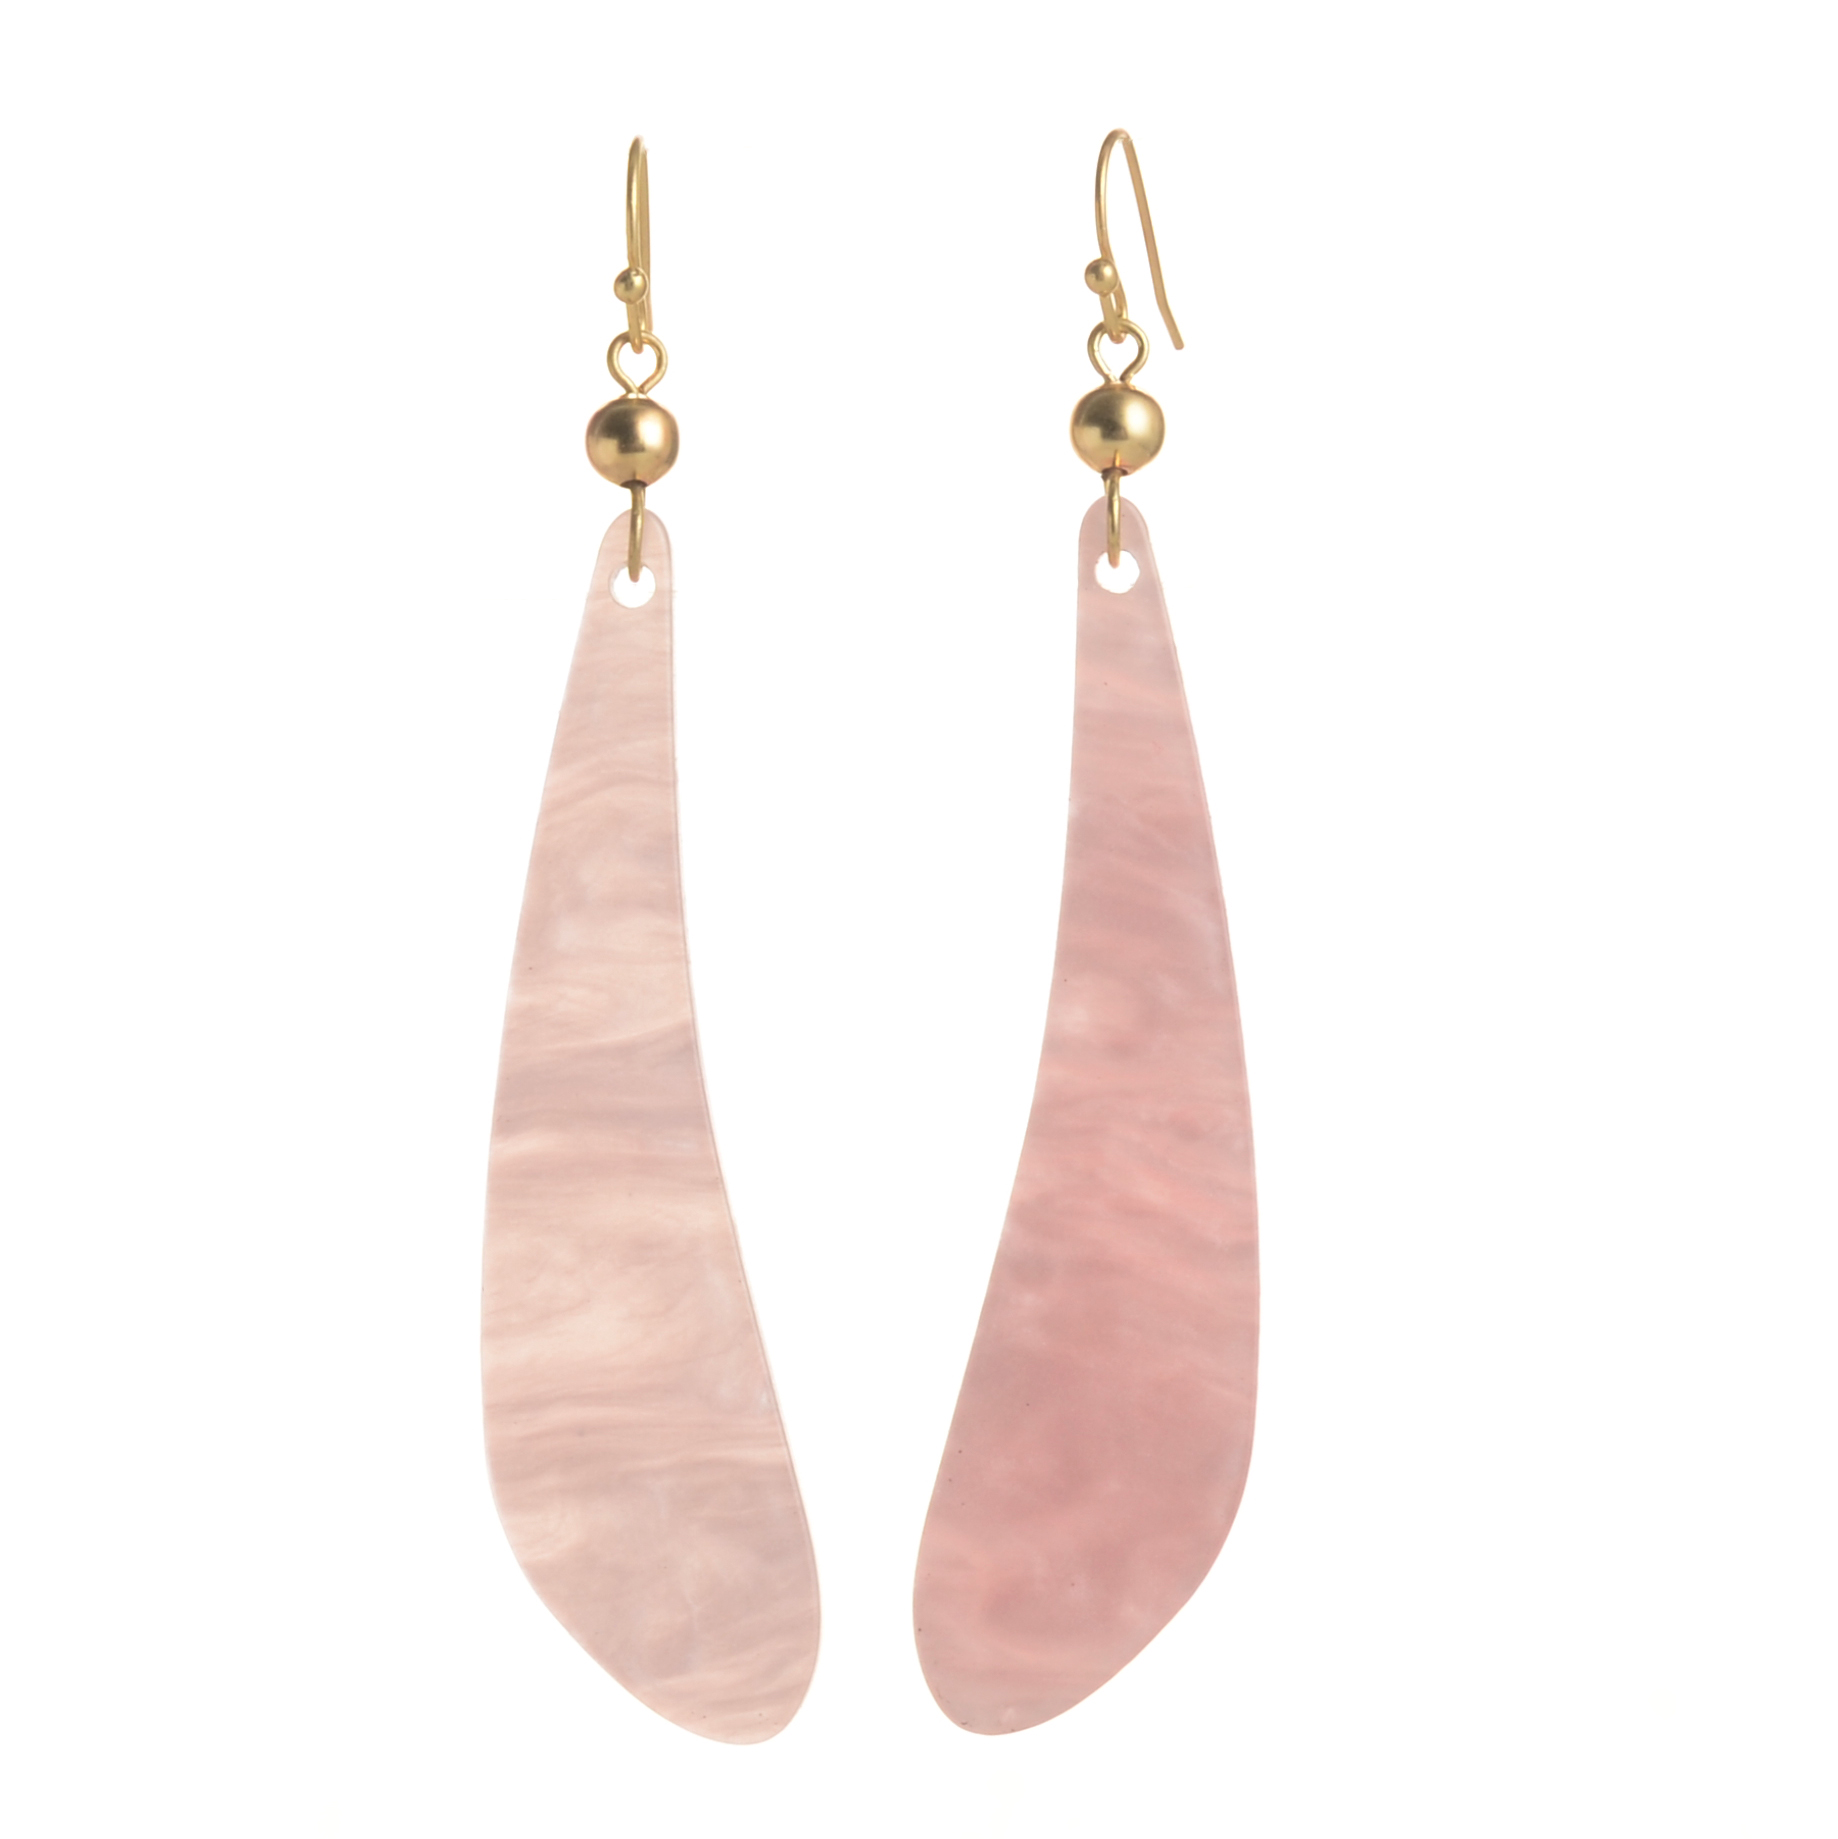 WENZHE New Style Women Jewelry Pink Color Acrylic Geometric Earrings Featured Image